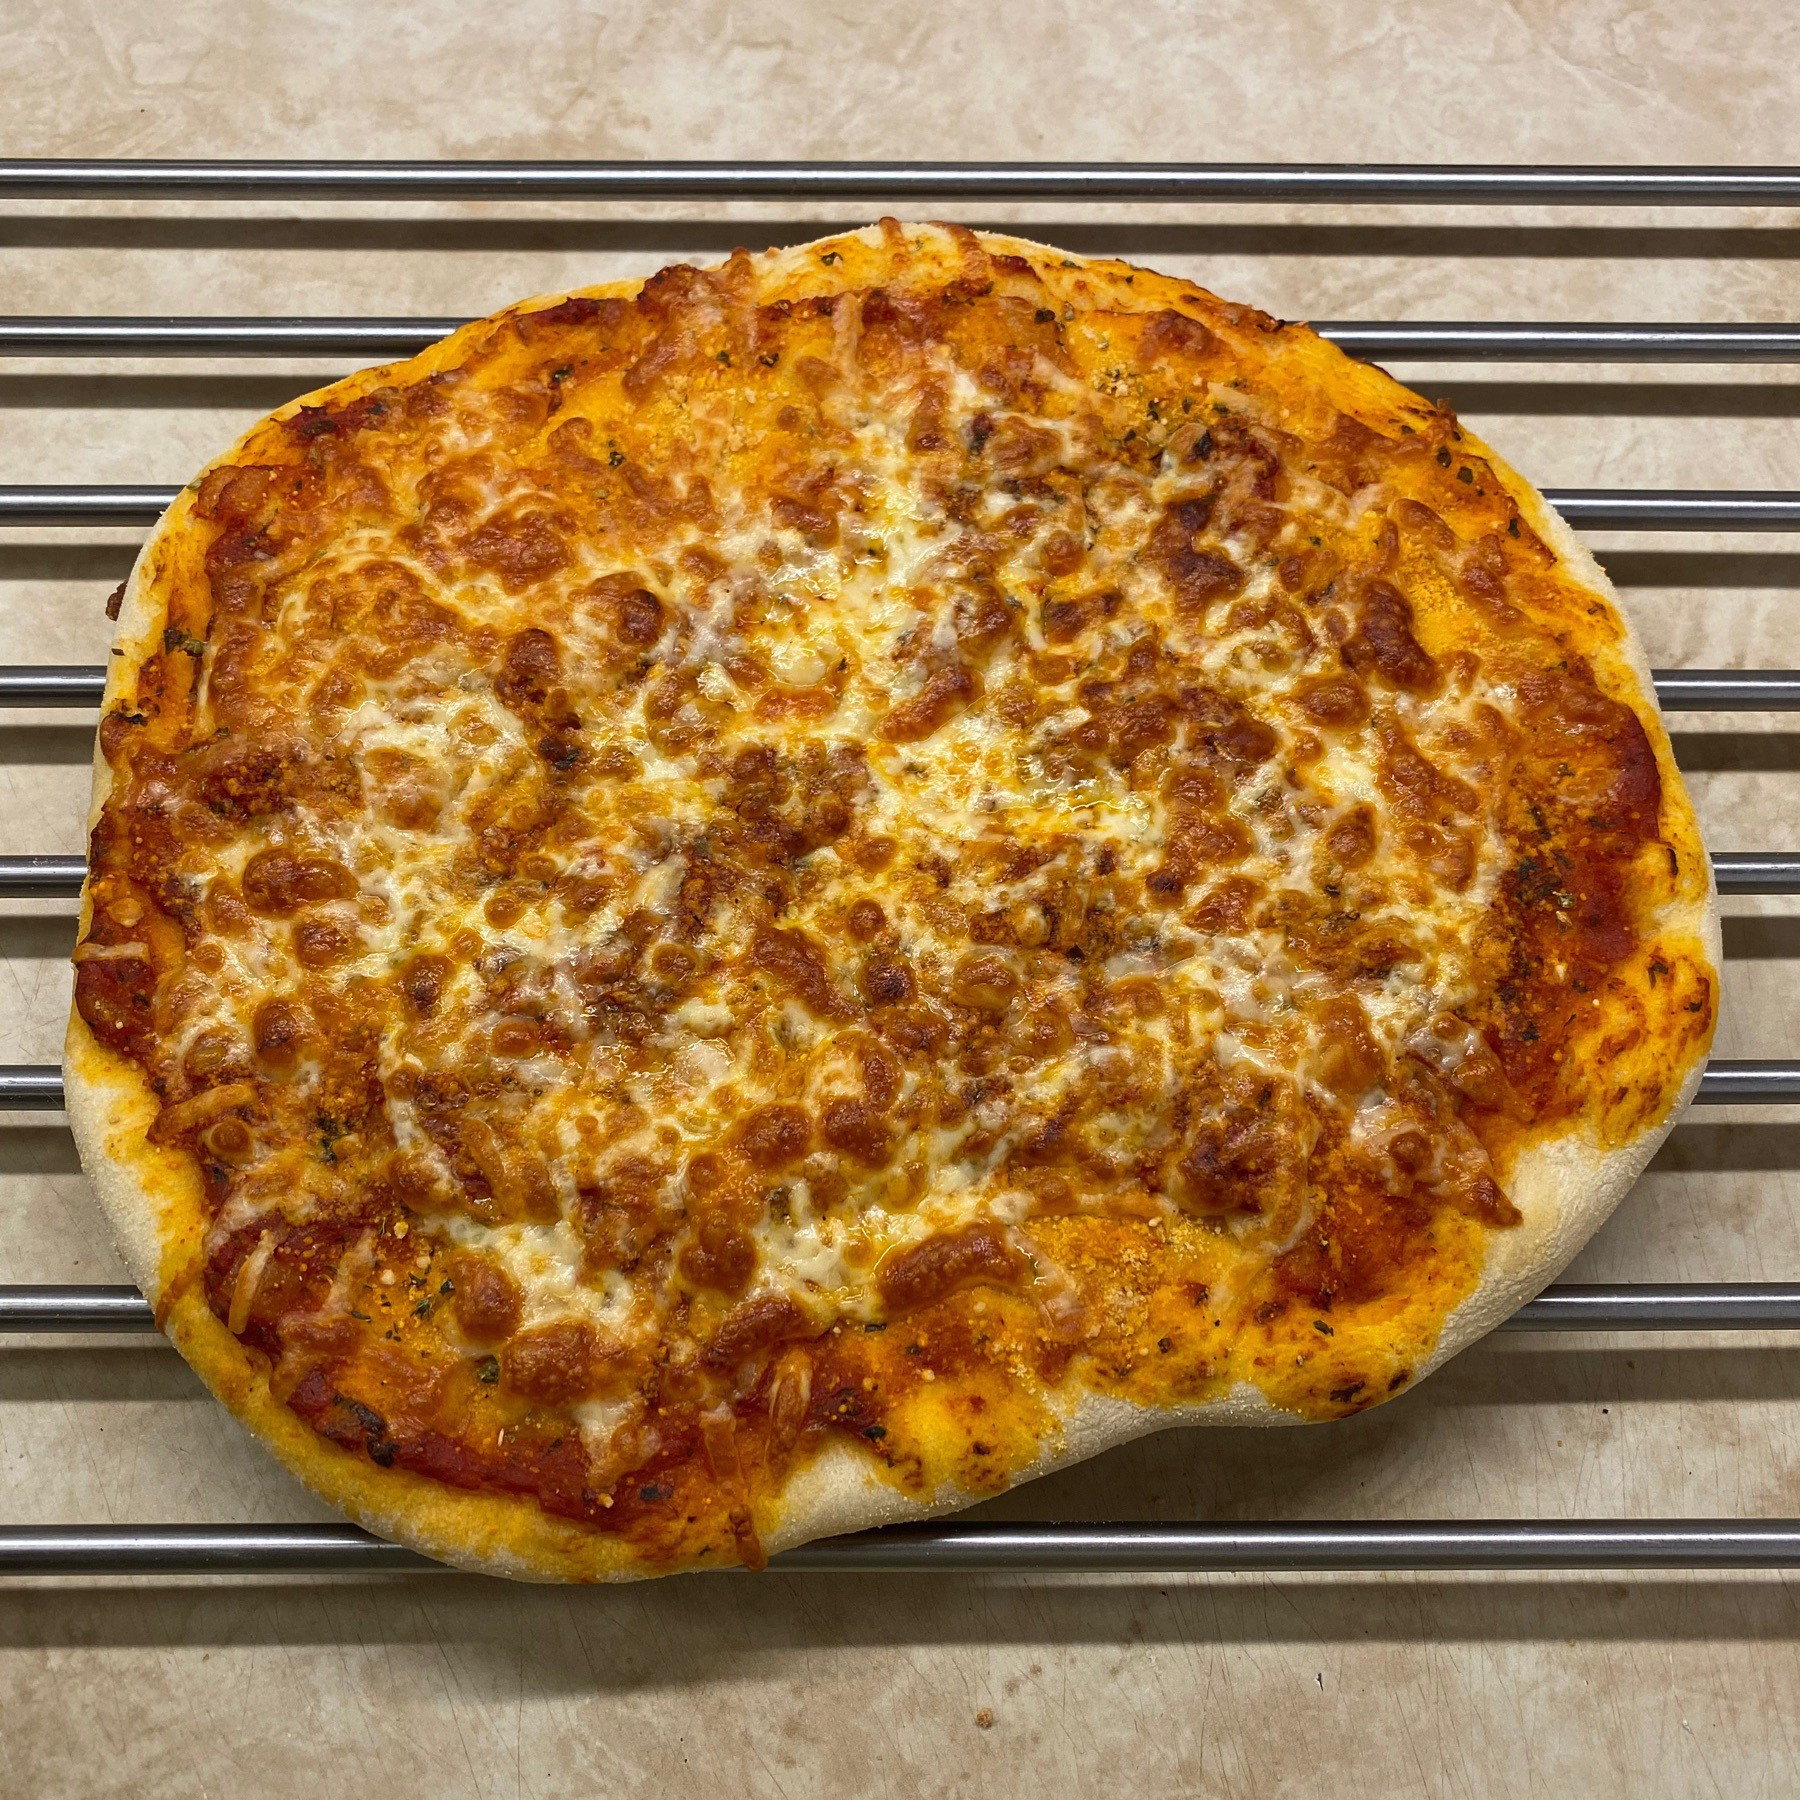 Cheese pizza cooling on rack.